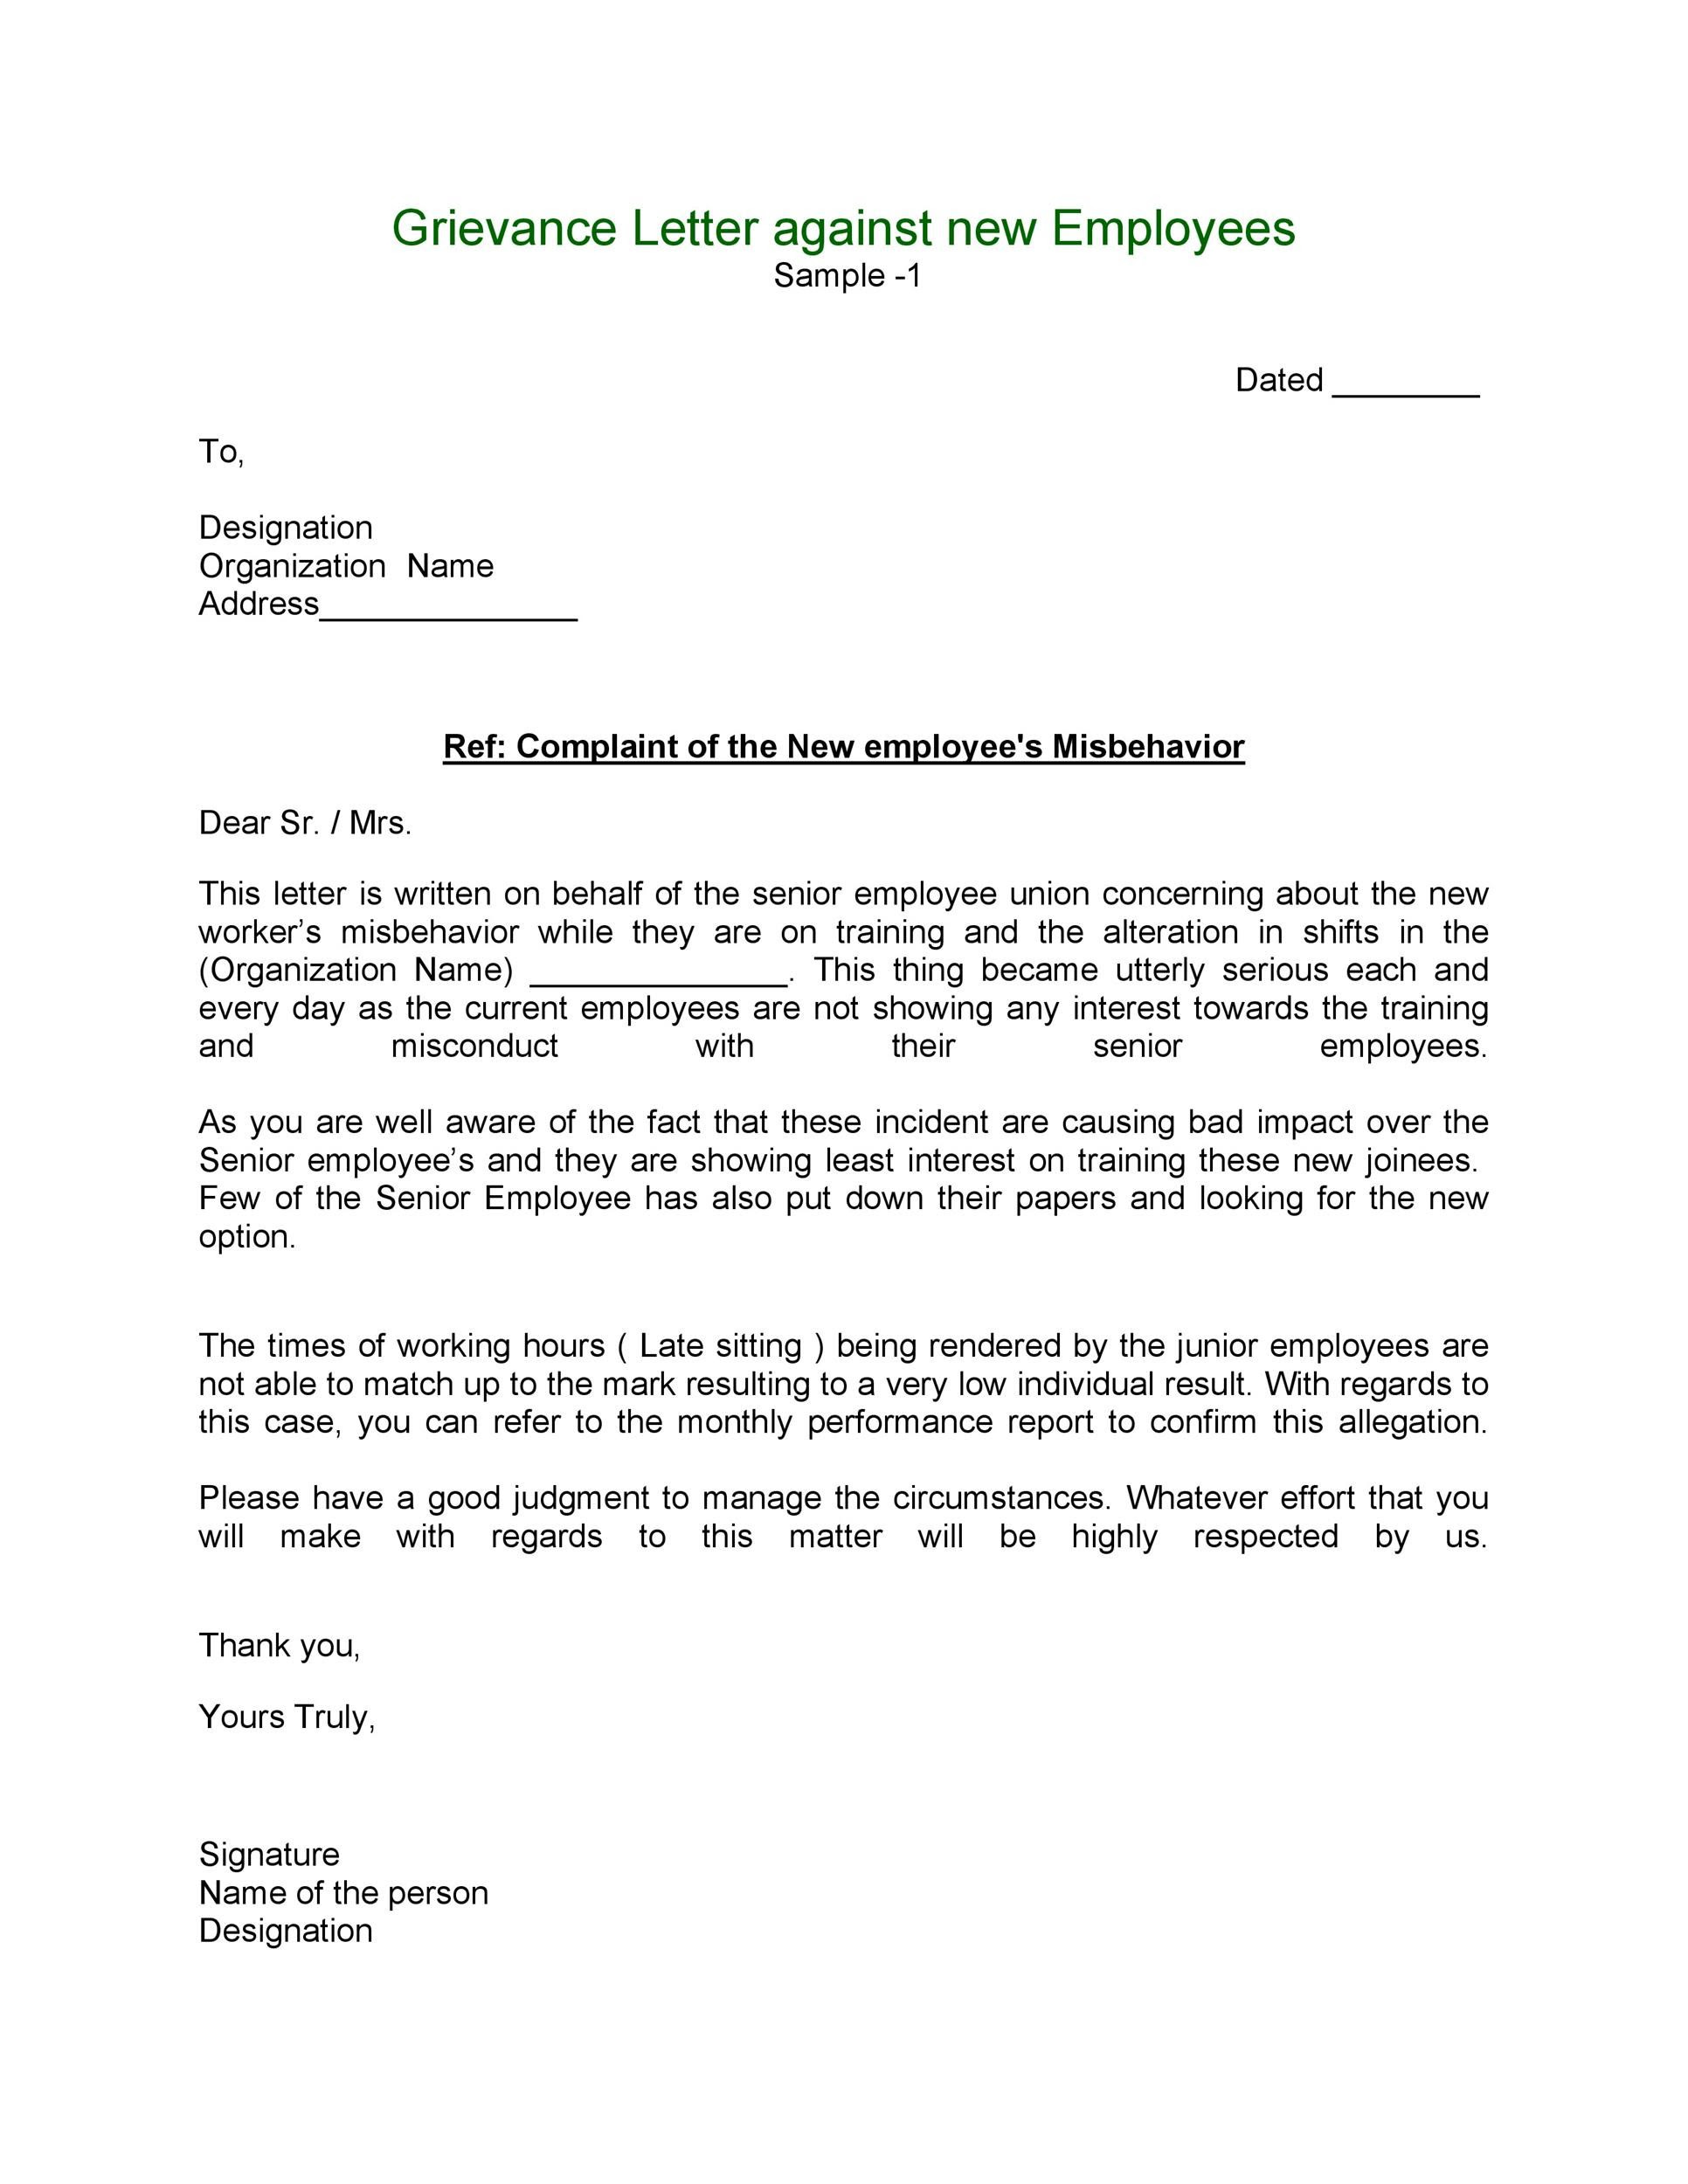 Bullying Examples Of Grievance Letters - bullying